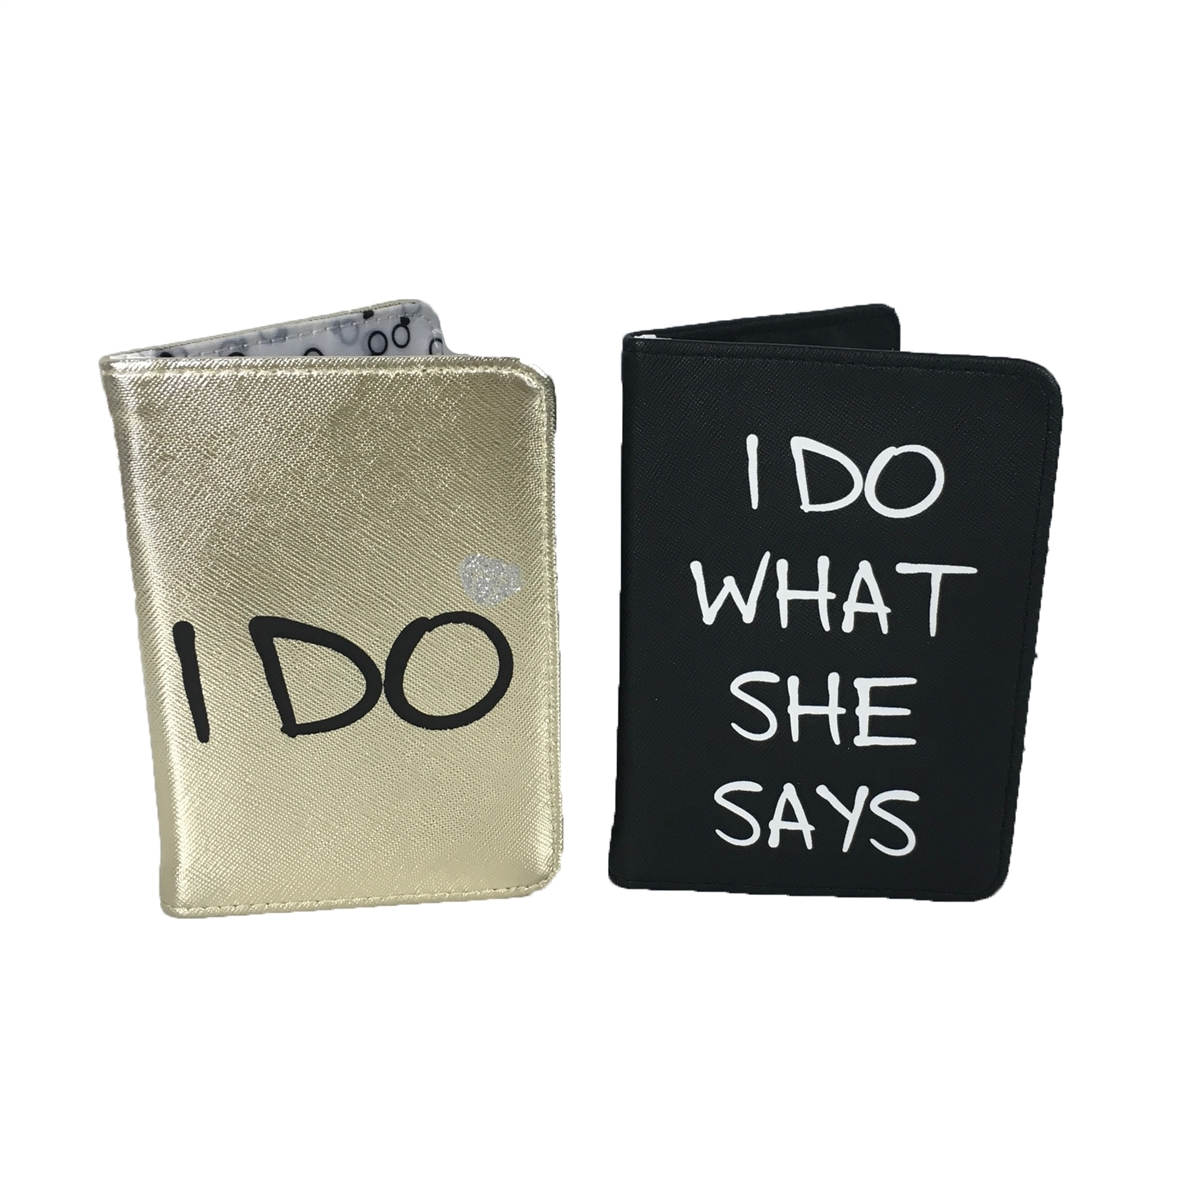 92203421e6be Fashion Culture I Do Passport Holder His & Her Set of 2, Black Gold